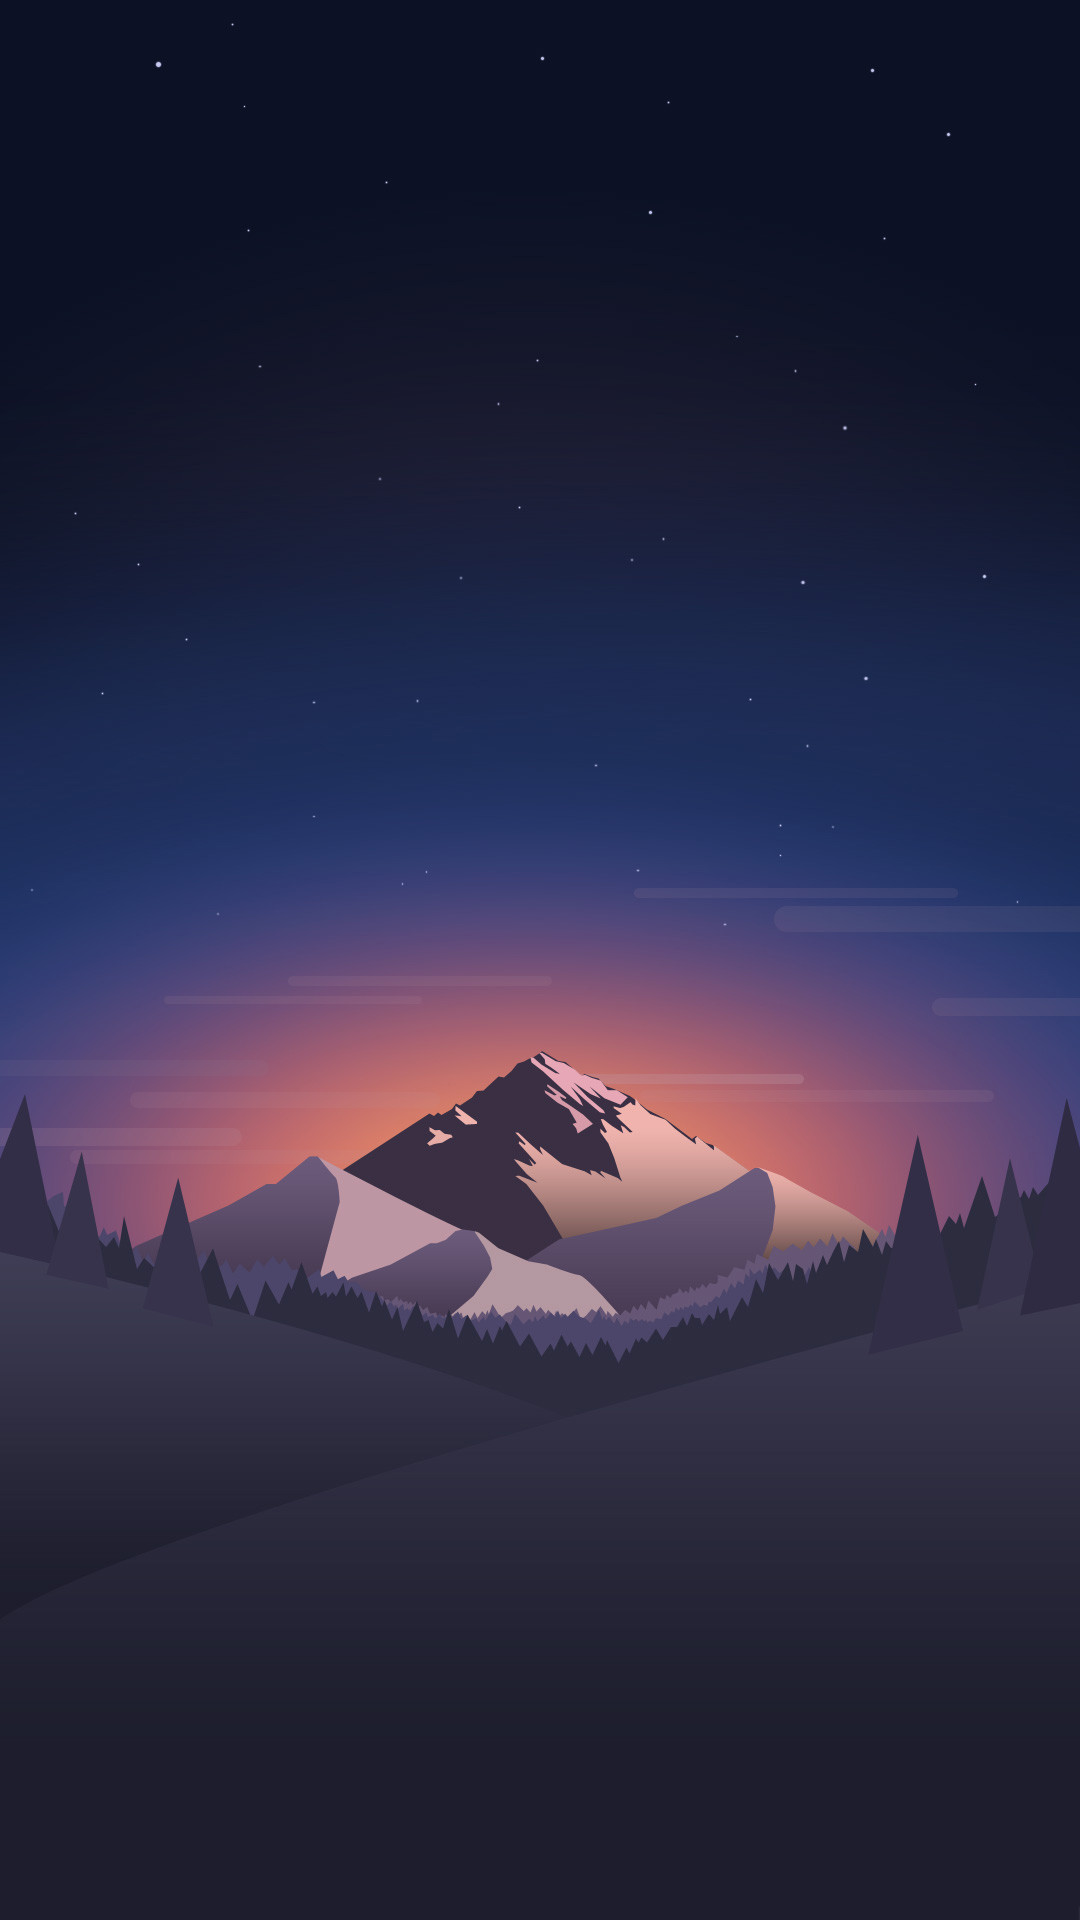 Res: 1080x1920, Low Poly Wallpapers (Desk & Phone) - Imgur